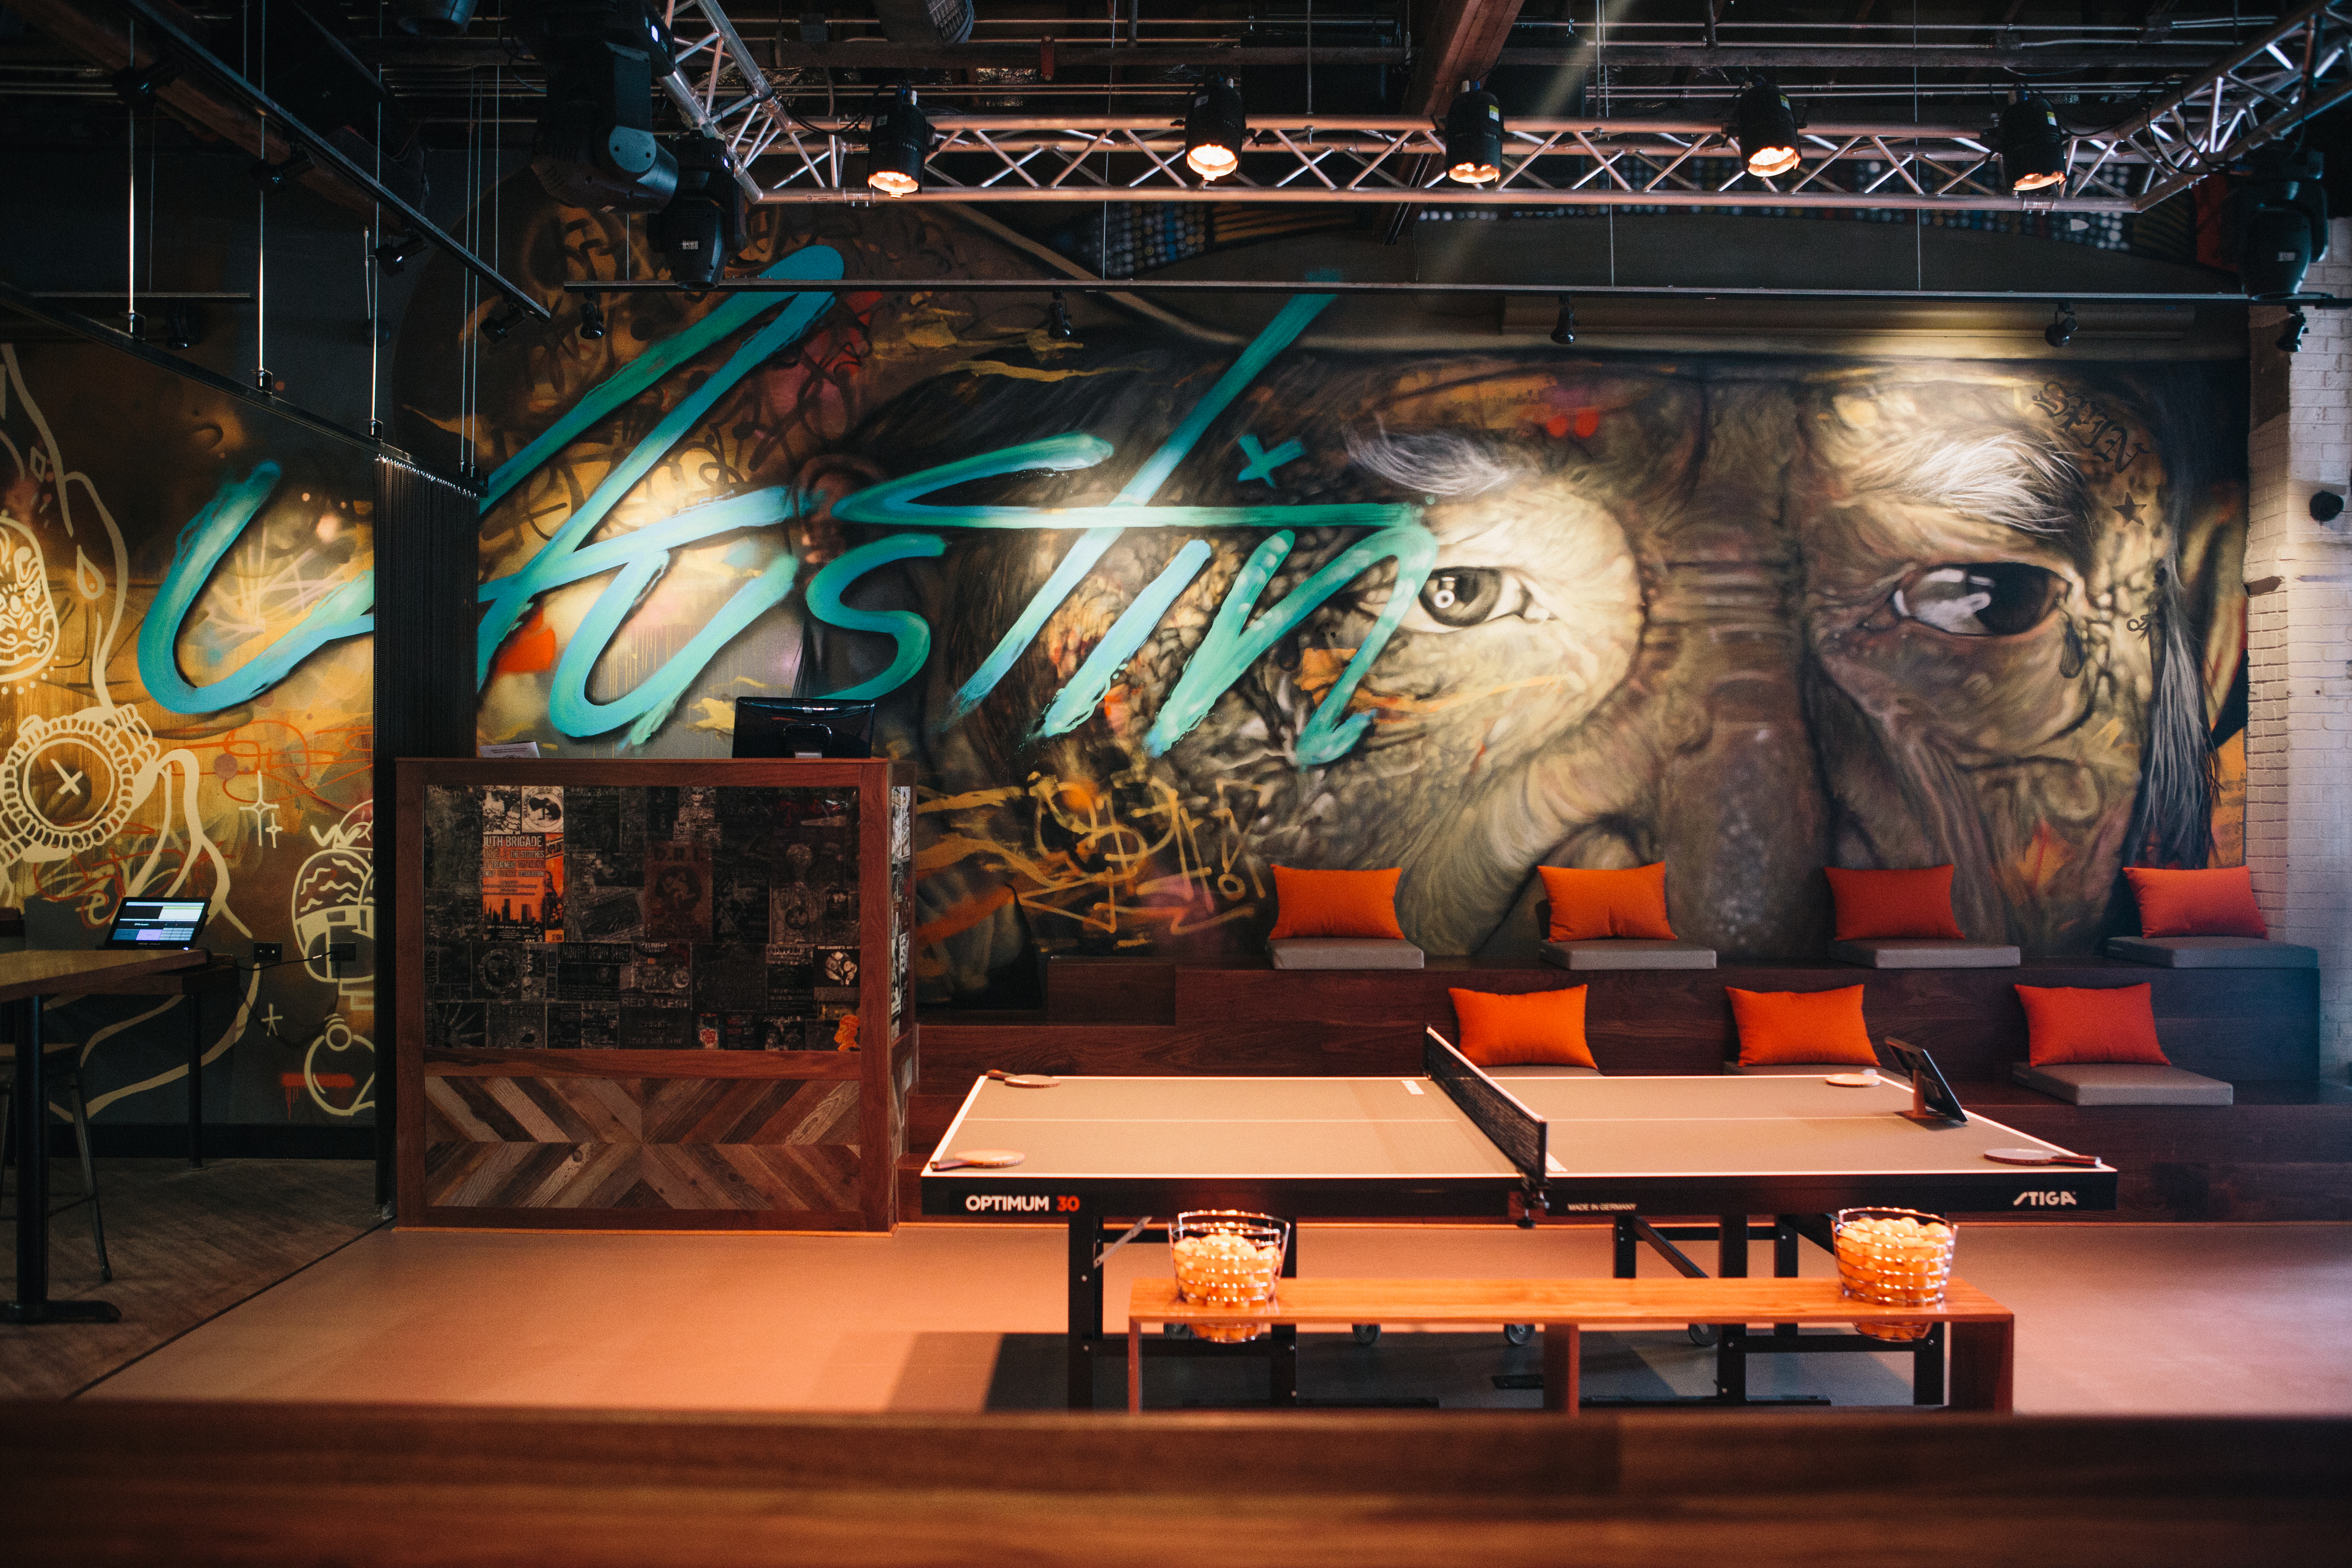 Spin's center court table in Austin